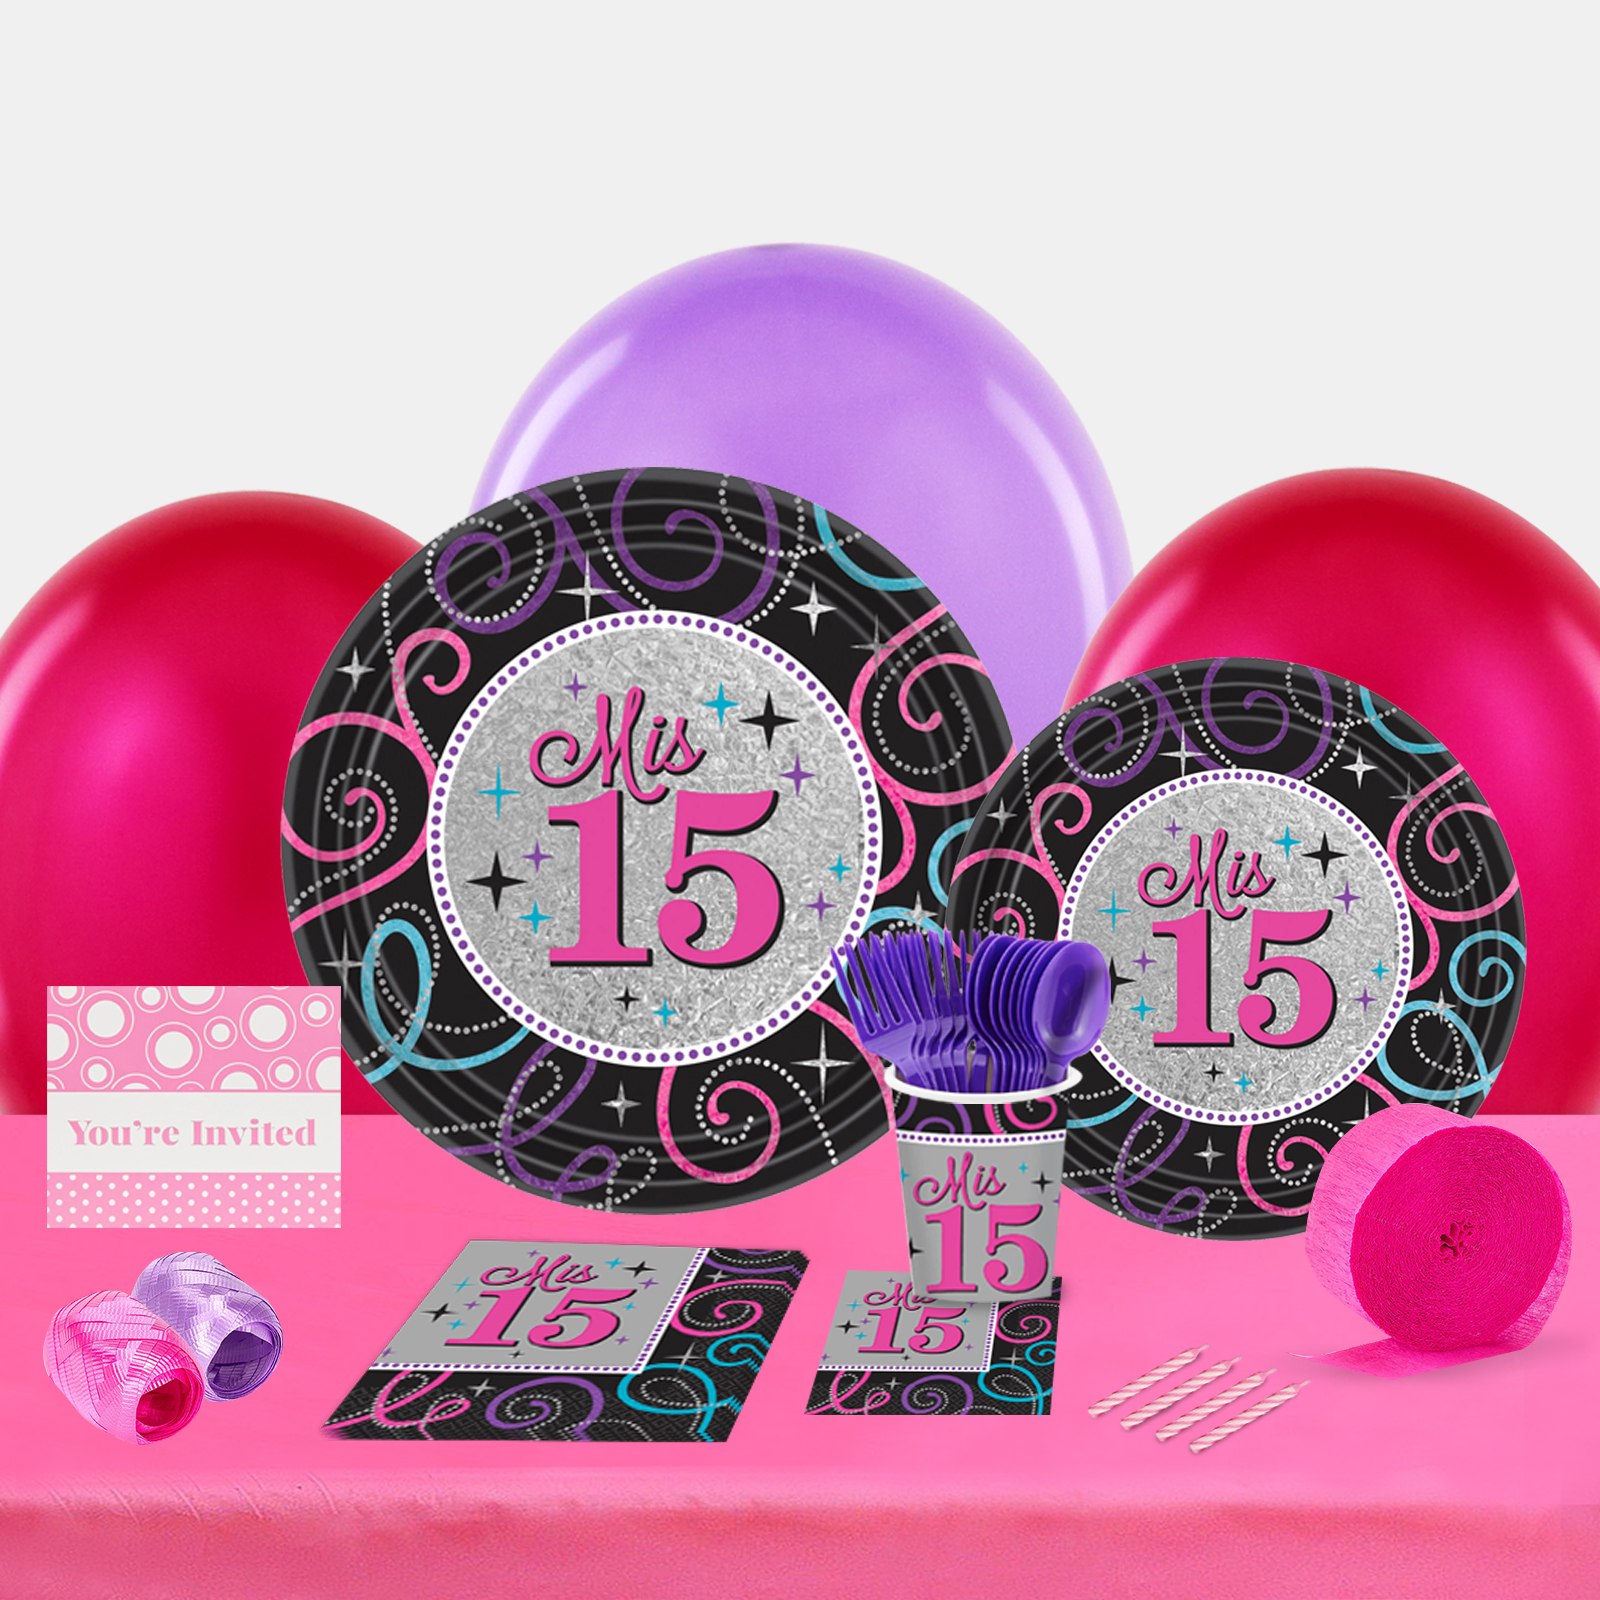 Mis Quince Anos Party In a Box For 8-Basic